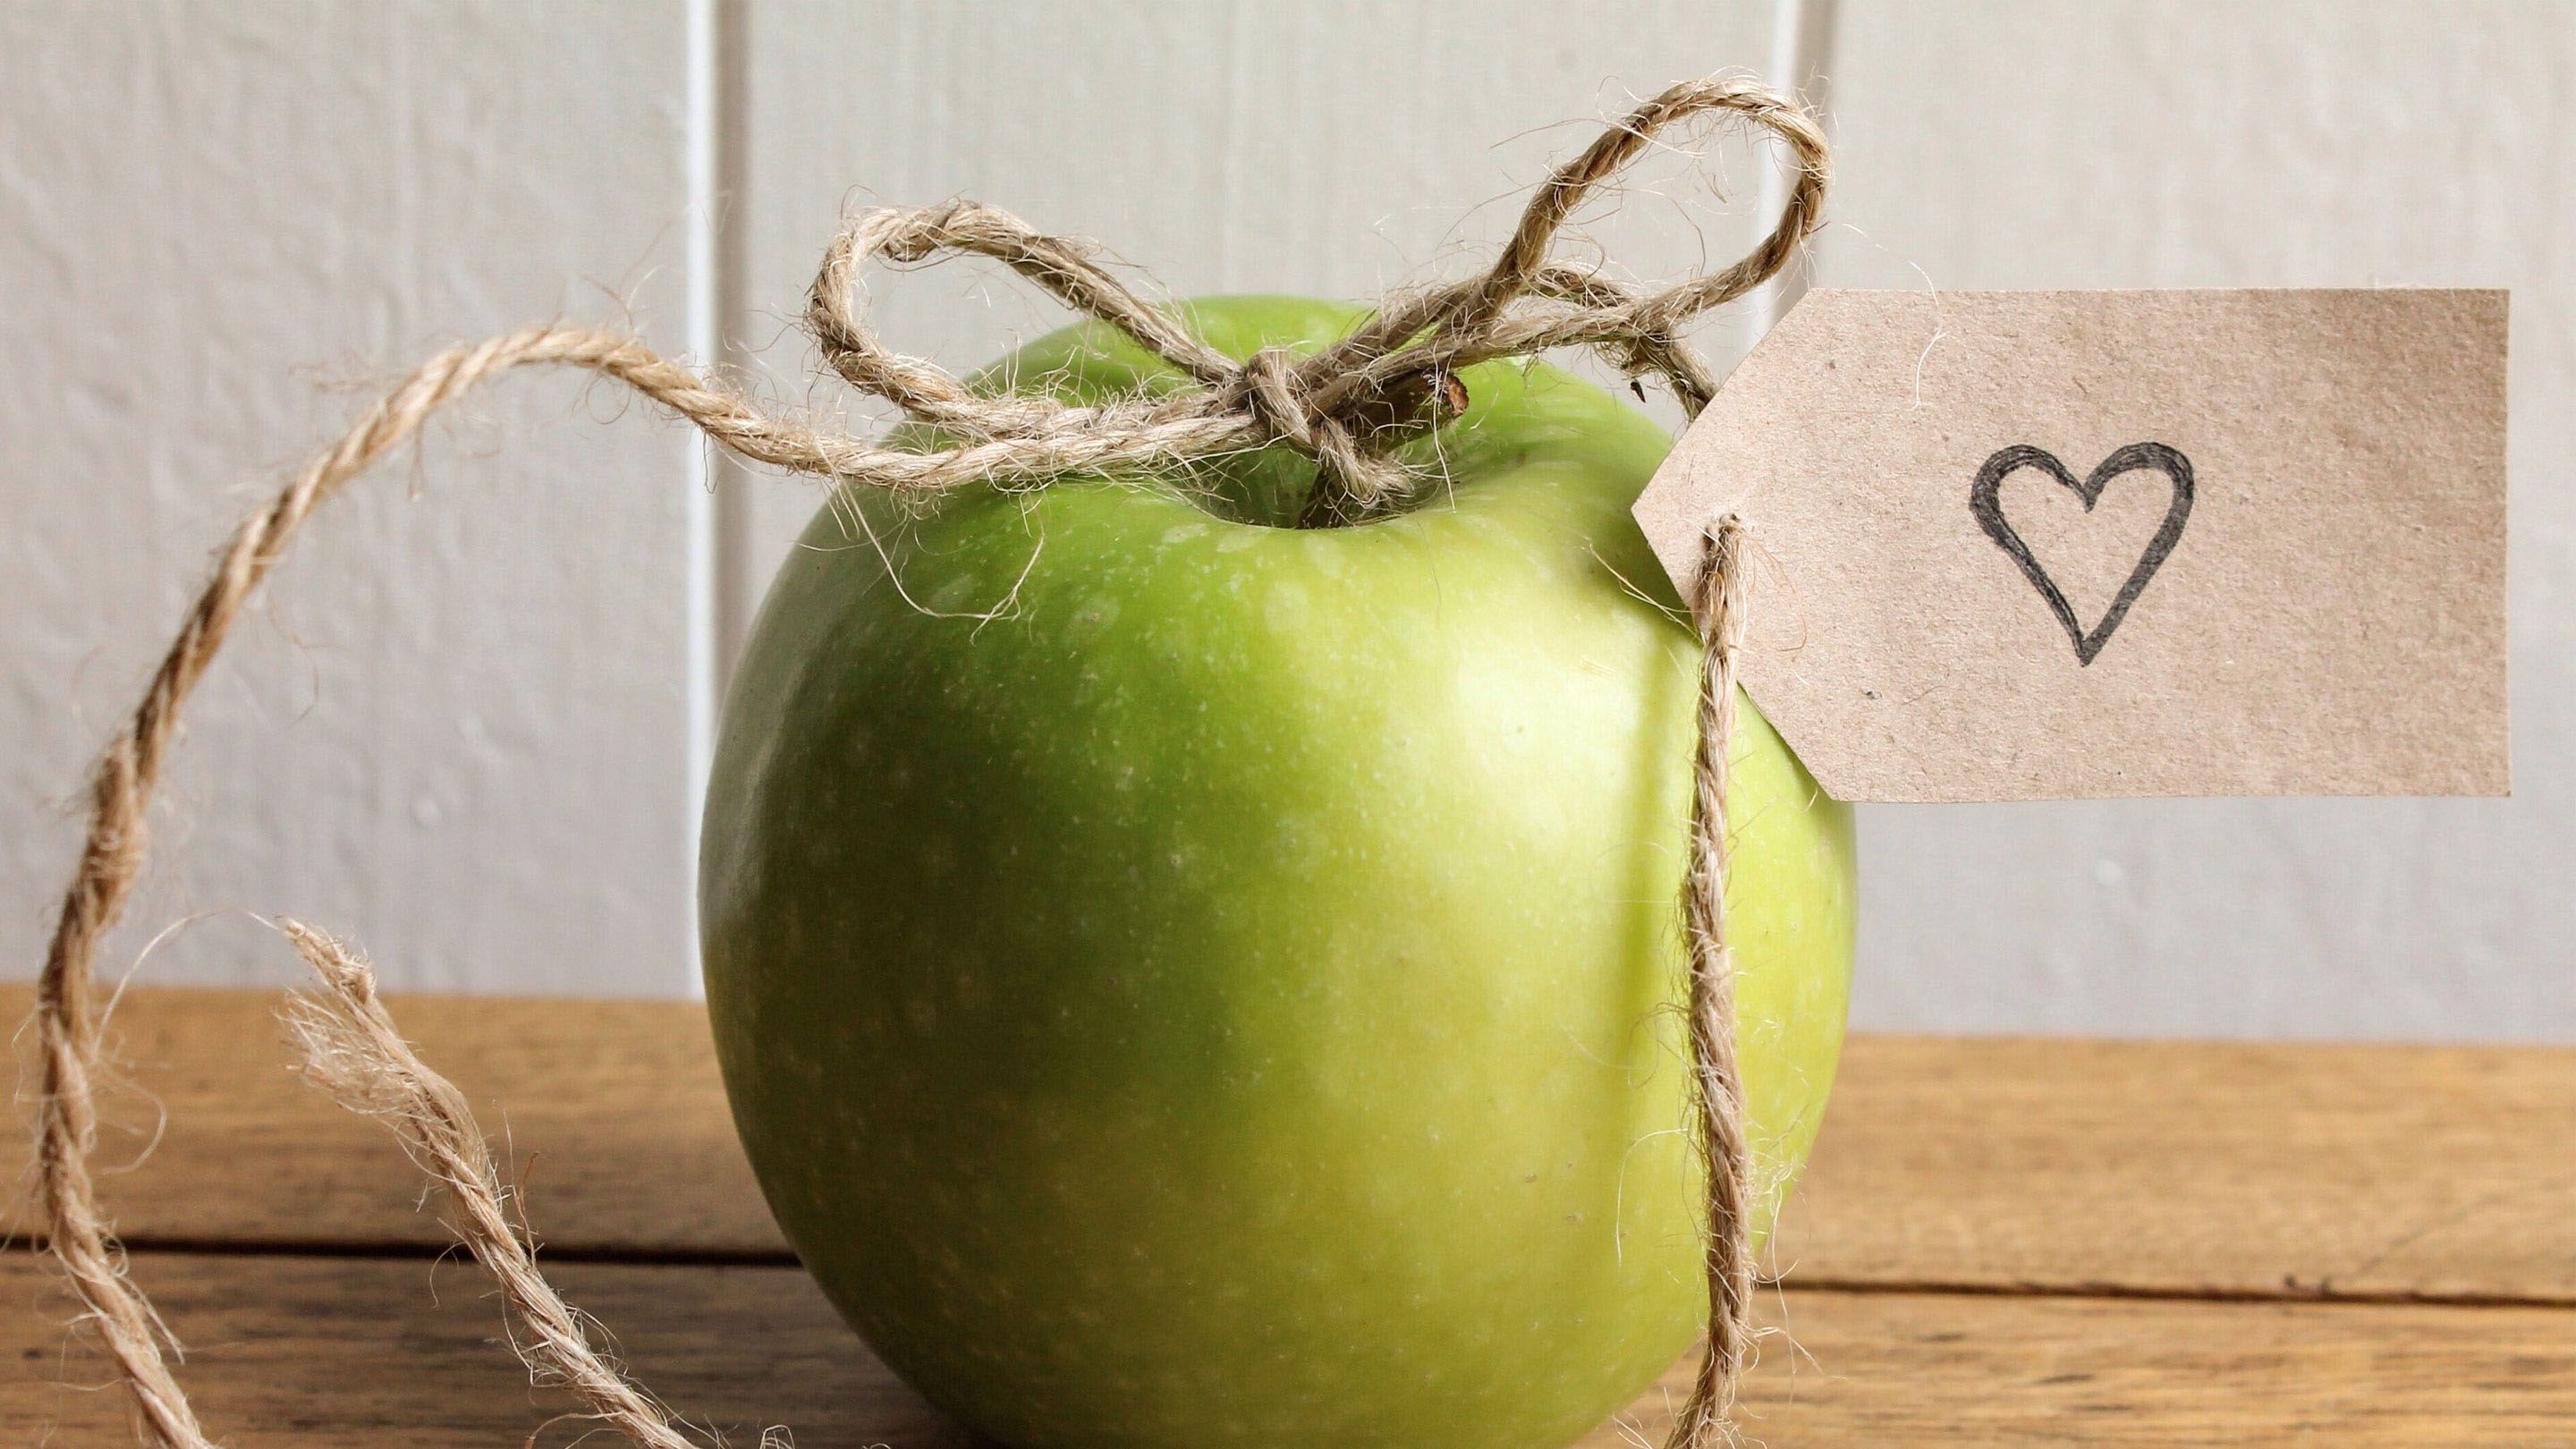 Photo of an apple with a bow on it.